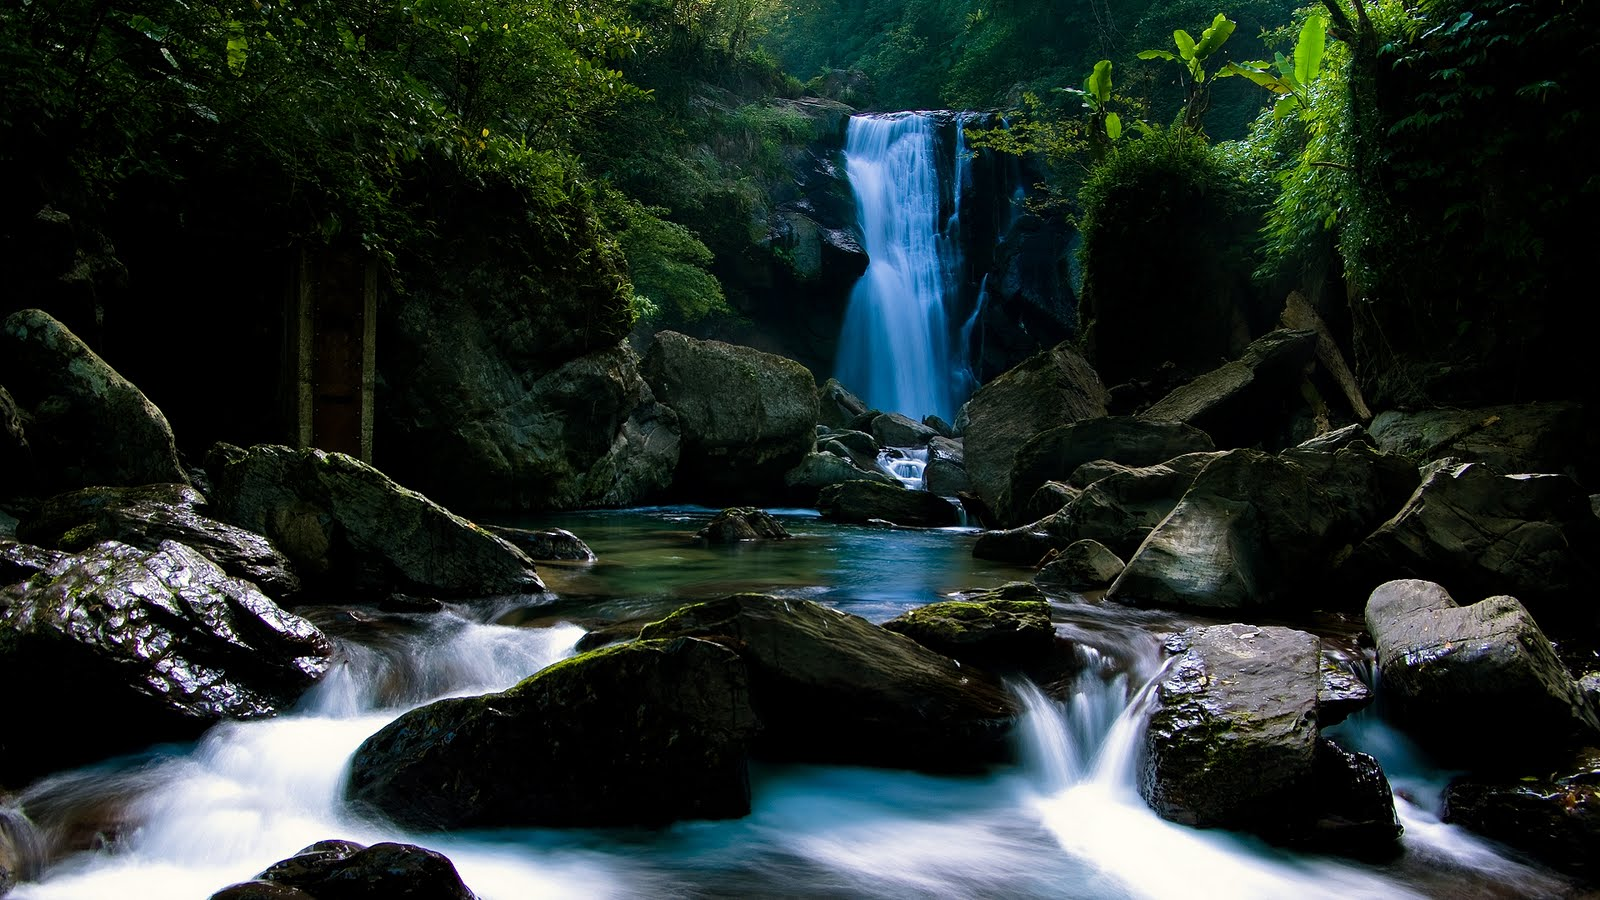 Wallpapers Box: Amazing Waterfall Widescreen High